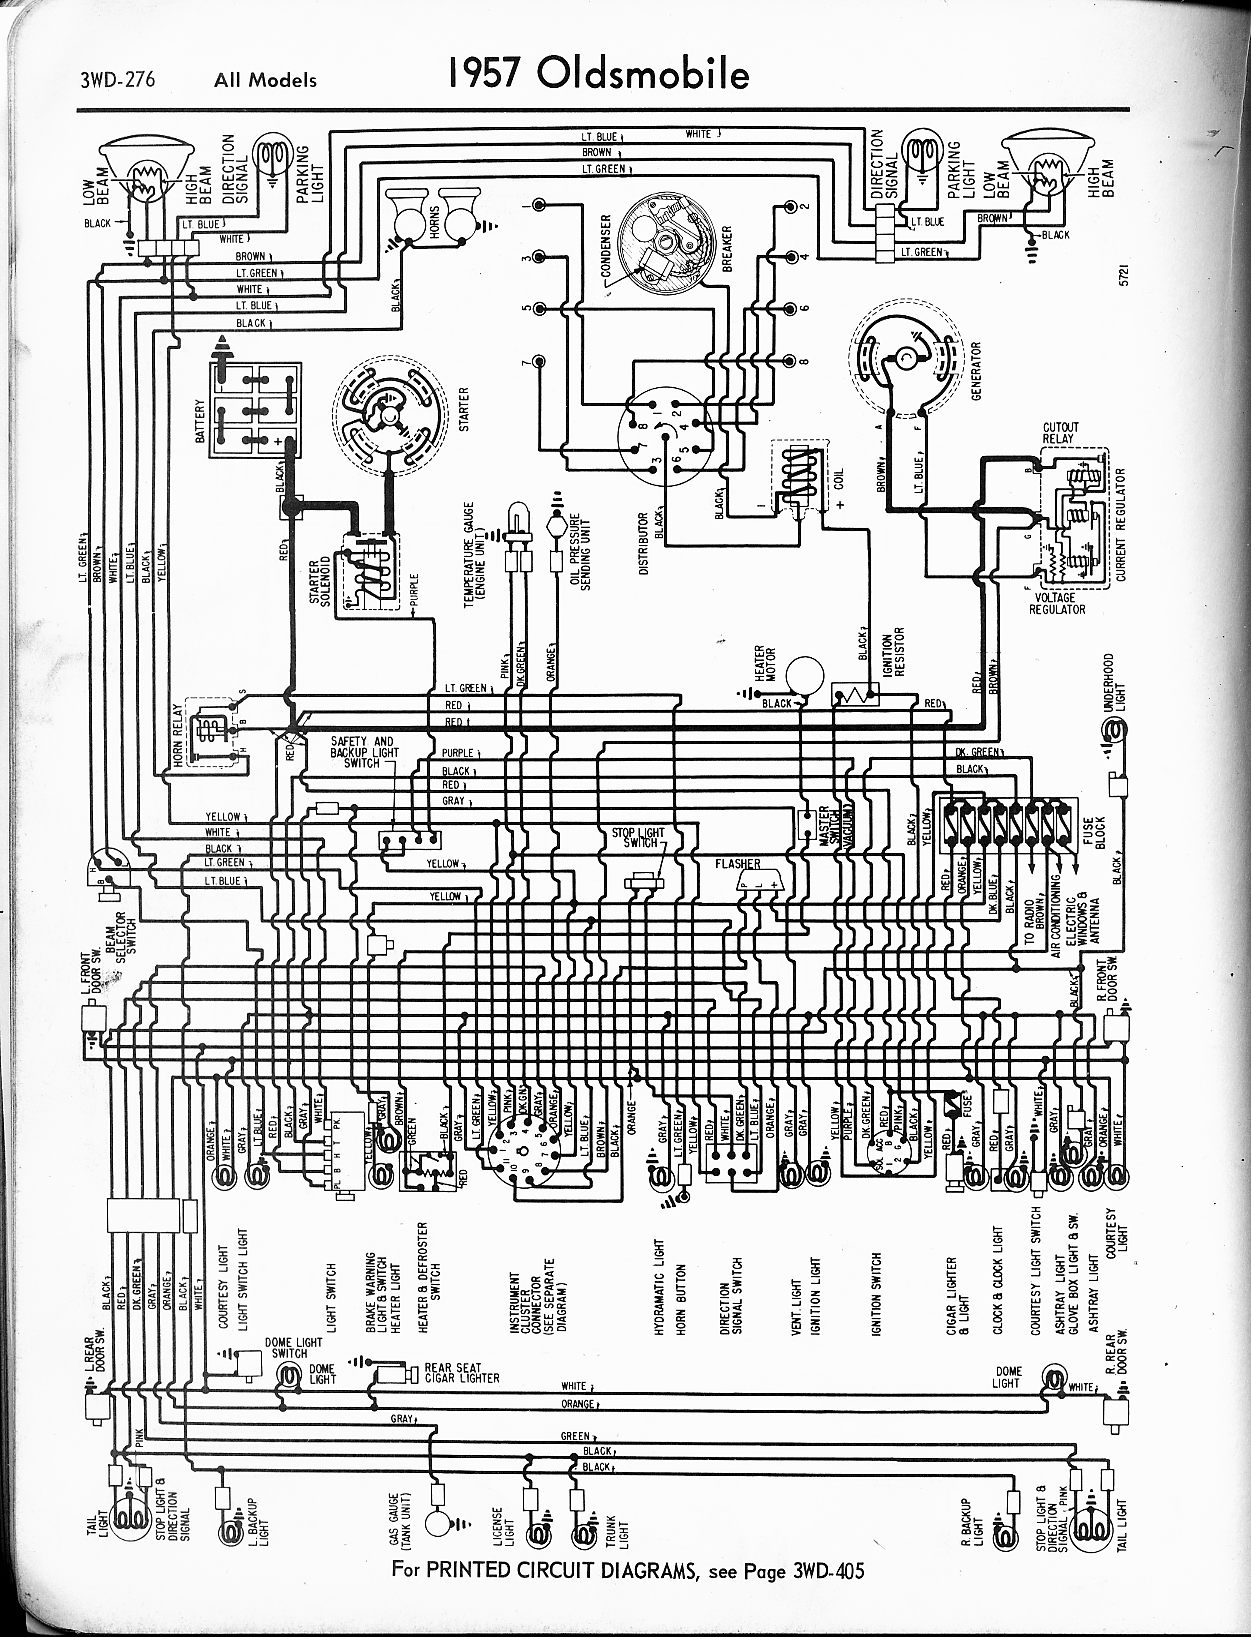 oldsmobile wiring diagrams the old car manual project rh oldcarmanualproject com 1998 Oldsmobile Wiring-Diagram 2000 Oldsmobile Intrigue Engine Diagram